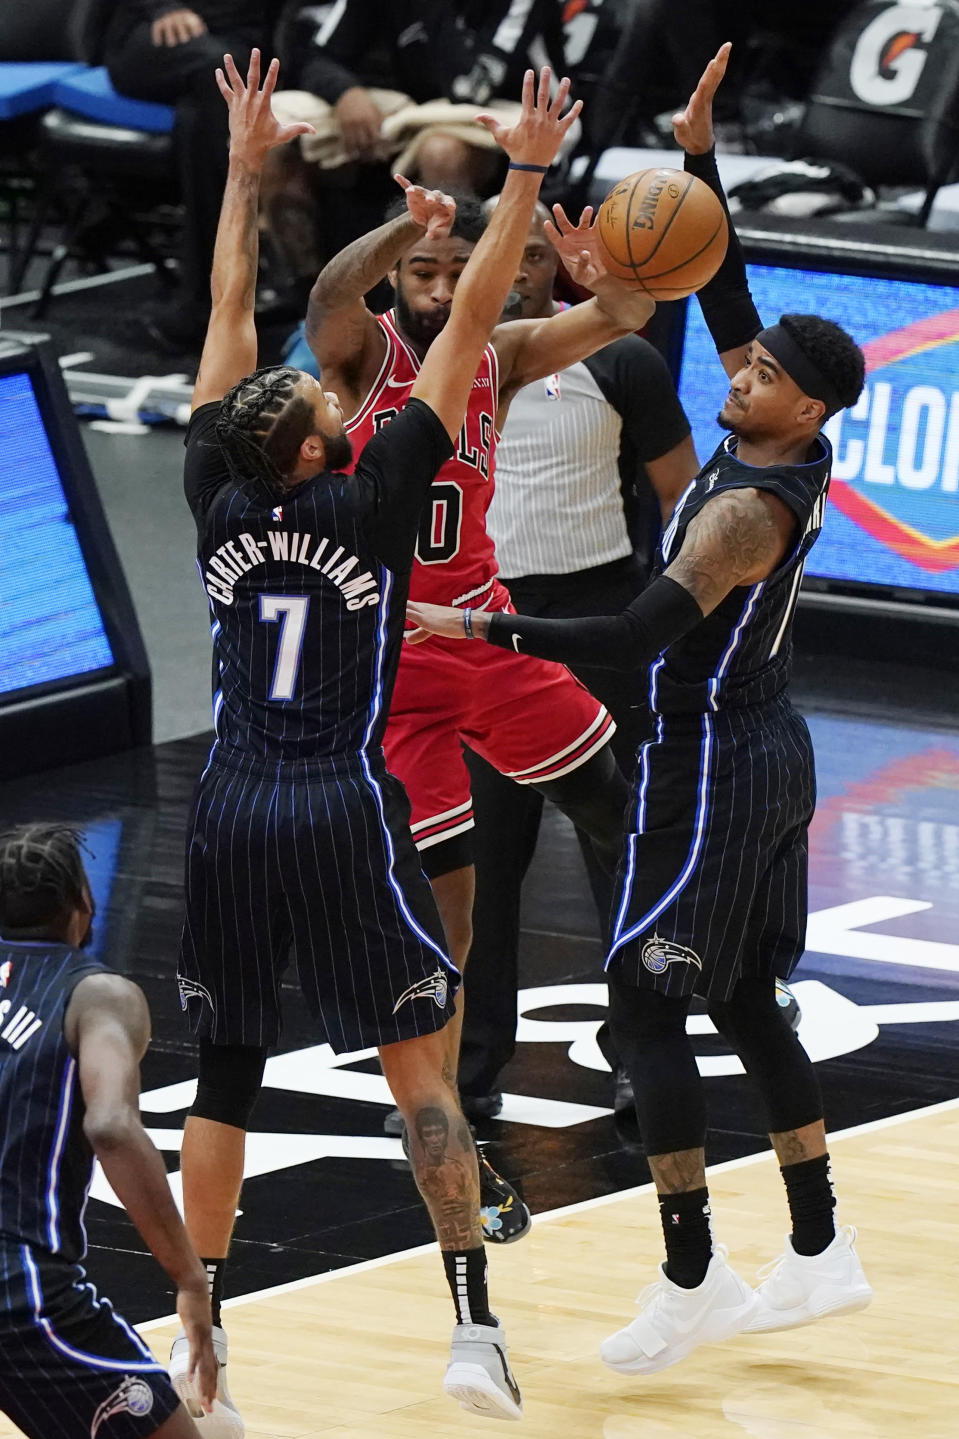 Chicago Bulls guard Coby White, center, passes the ball against Orlando Magic guard Michael Carter-Williams, left, and guard Gary Harris during the first half of an NBA basketball game in Chicago, Wednesday, April 14, 2021. (AP Photo/Nam Y. Huh)